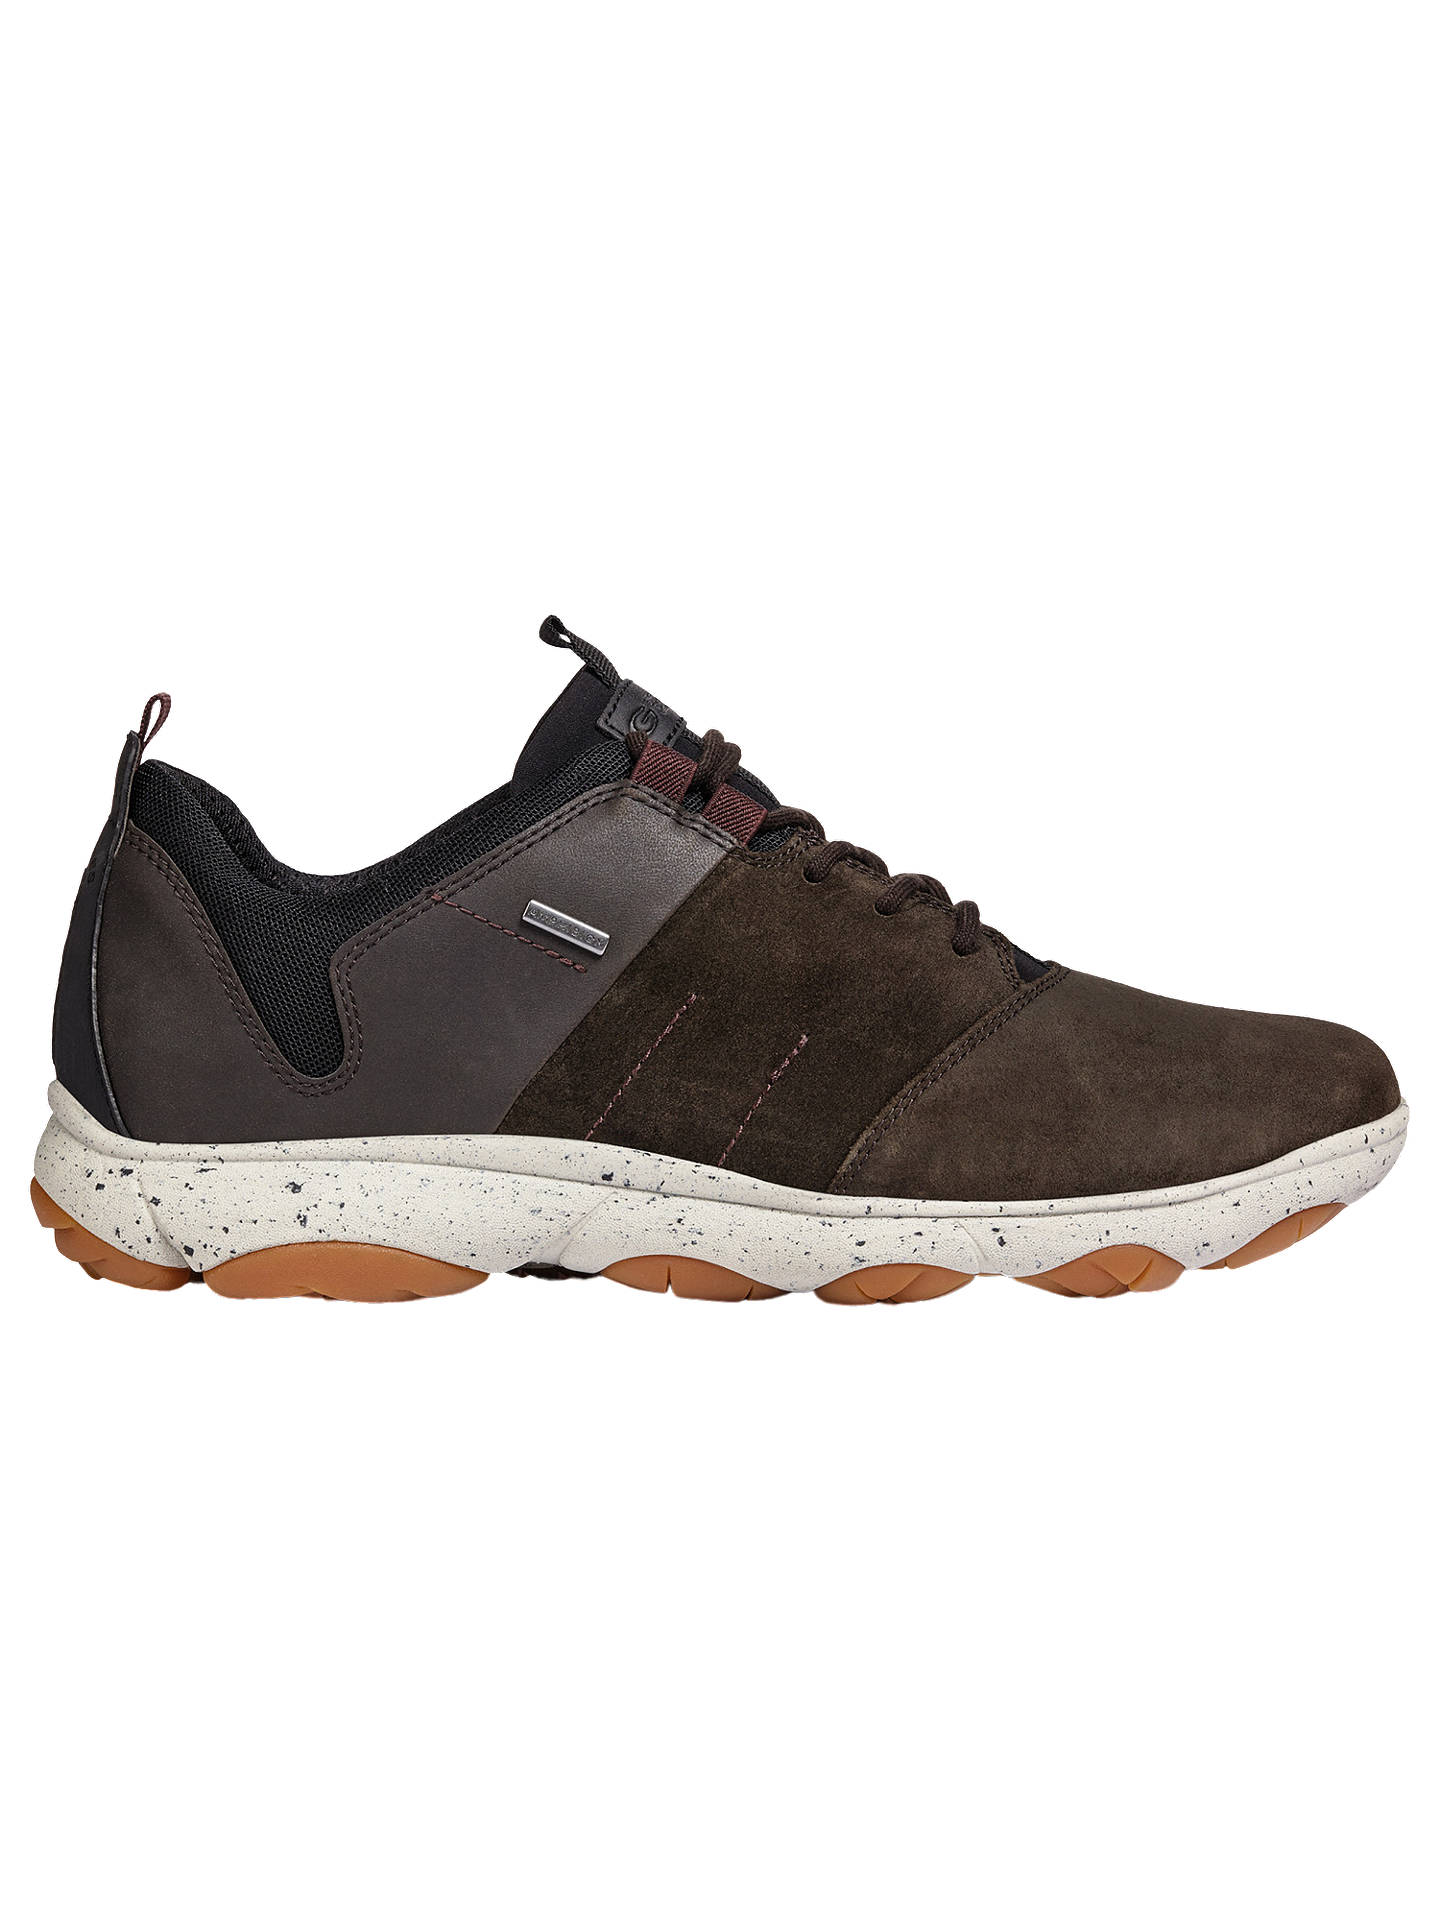 5bcefb47e5f8f Buy Geox Nebula 4x4 ABX Trainers, Brown, 6 Online at johnlewis.com ...